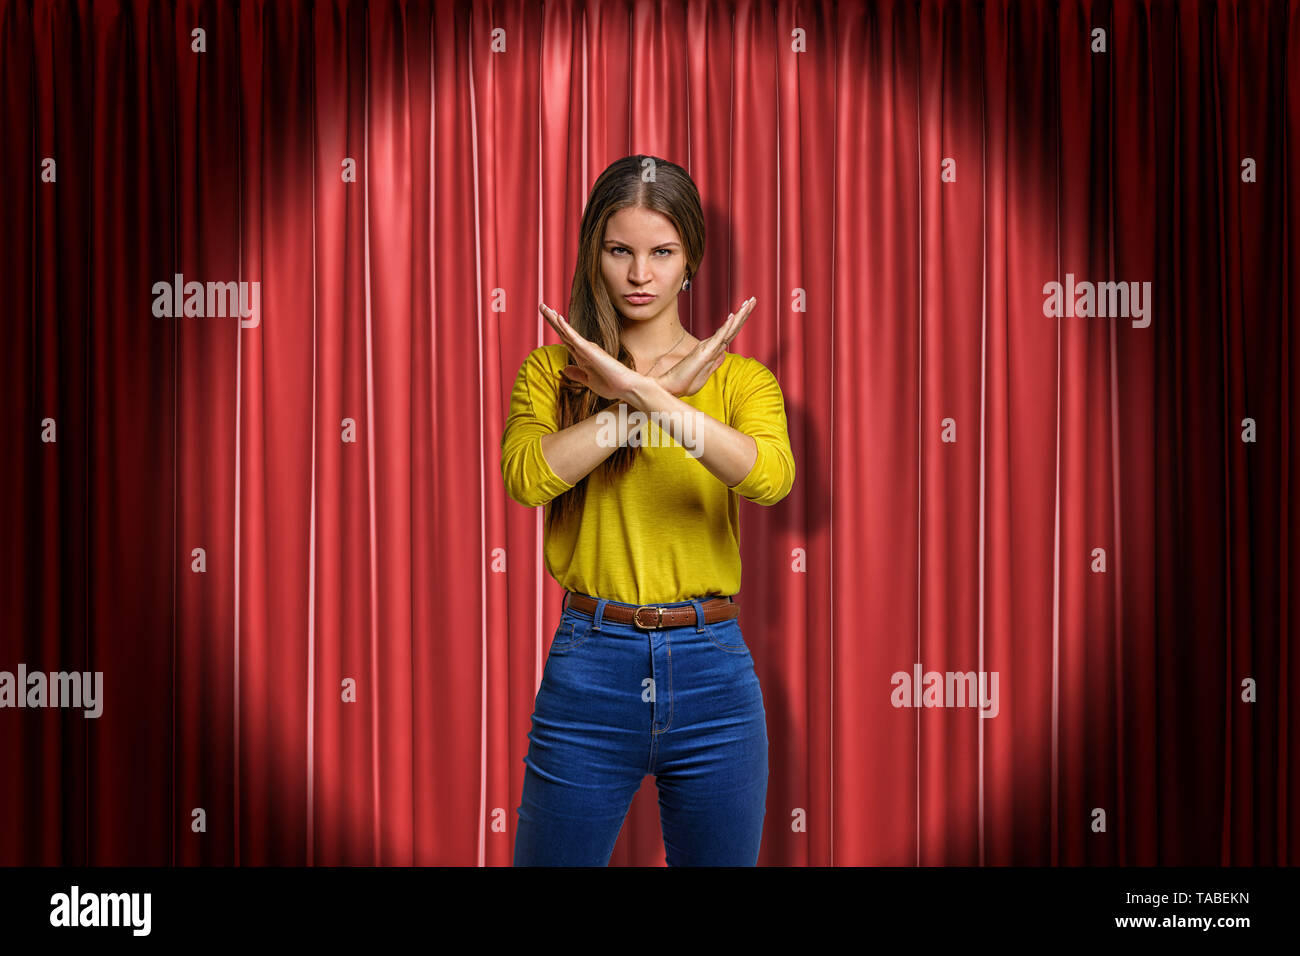 Young determined woman wearing jeans and yellow shirt making rejection gesture on red stage curtains background. Digital art. Feelings and emotions. P - Stock Image